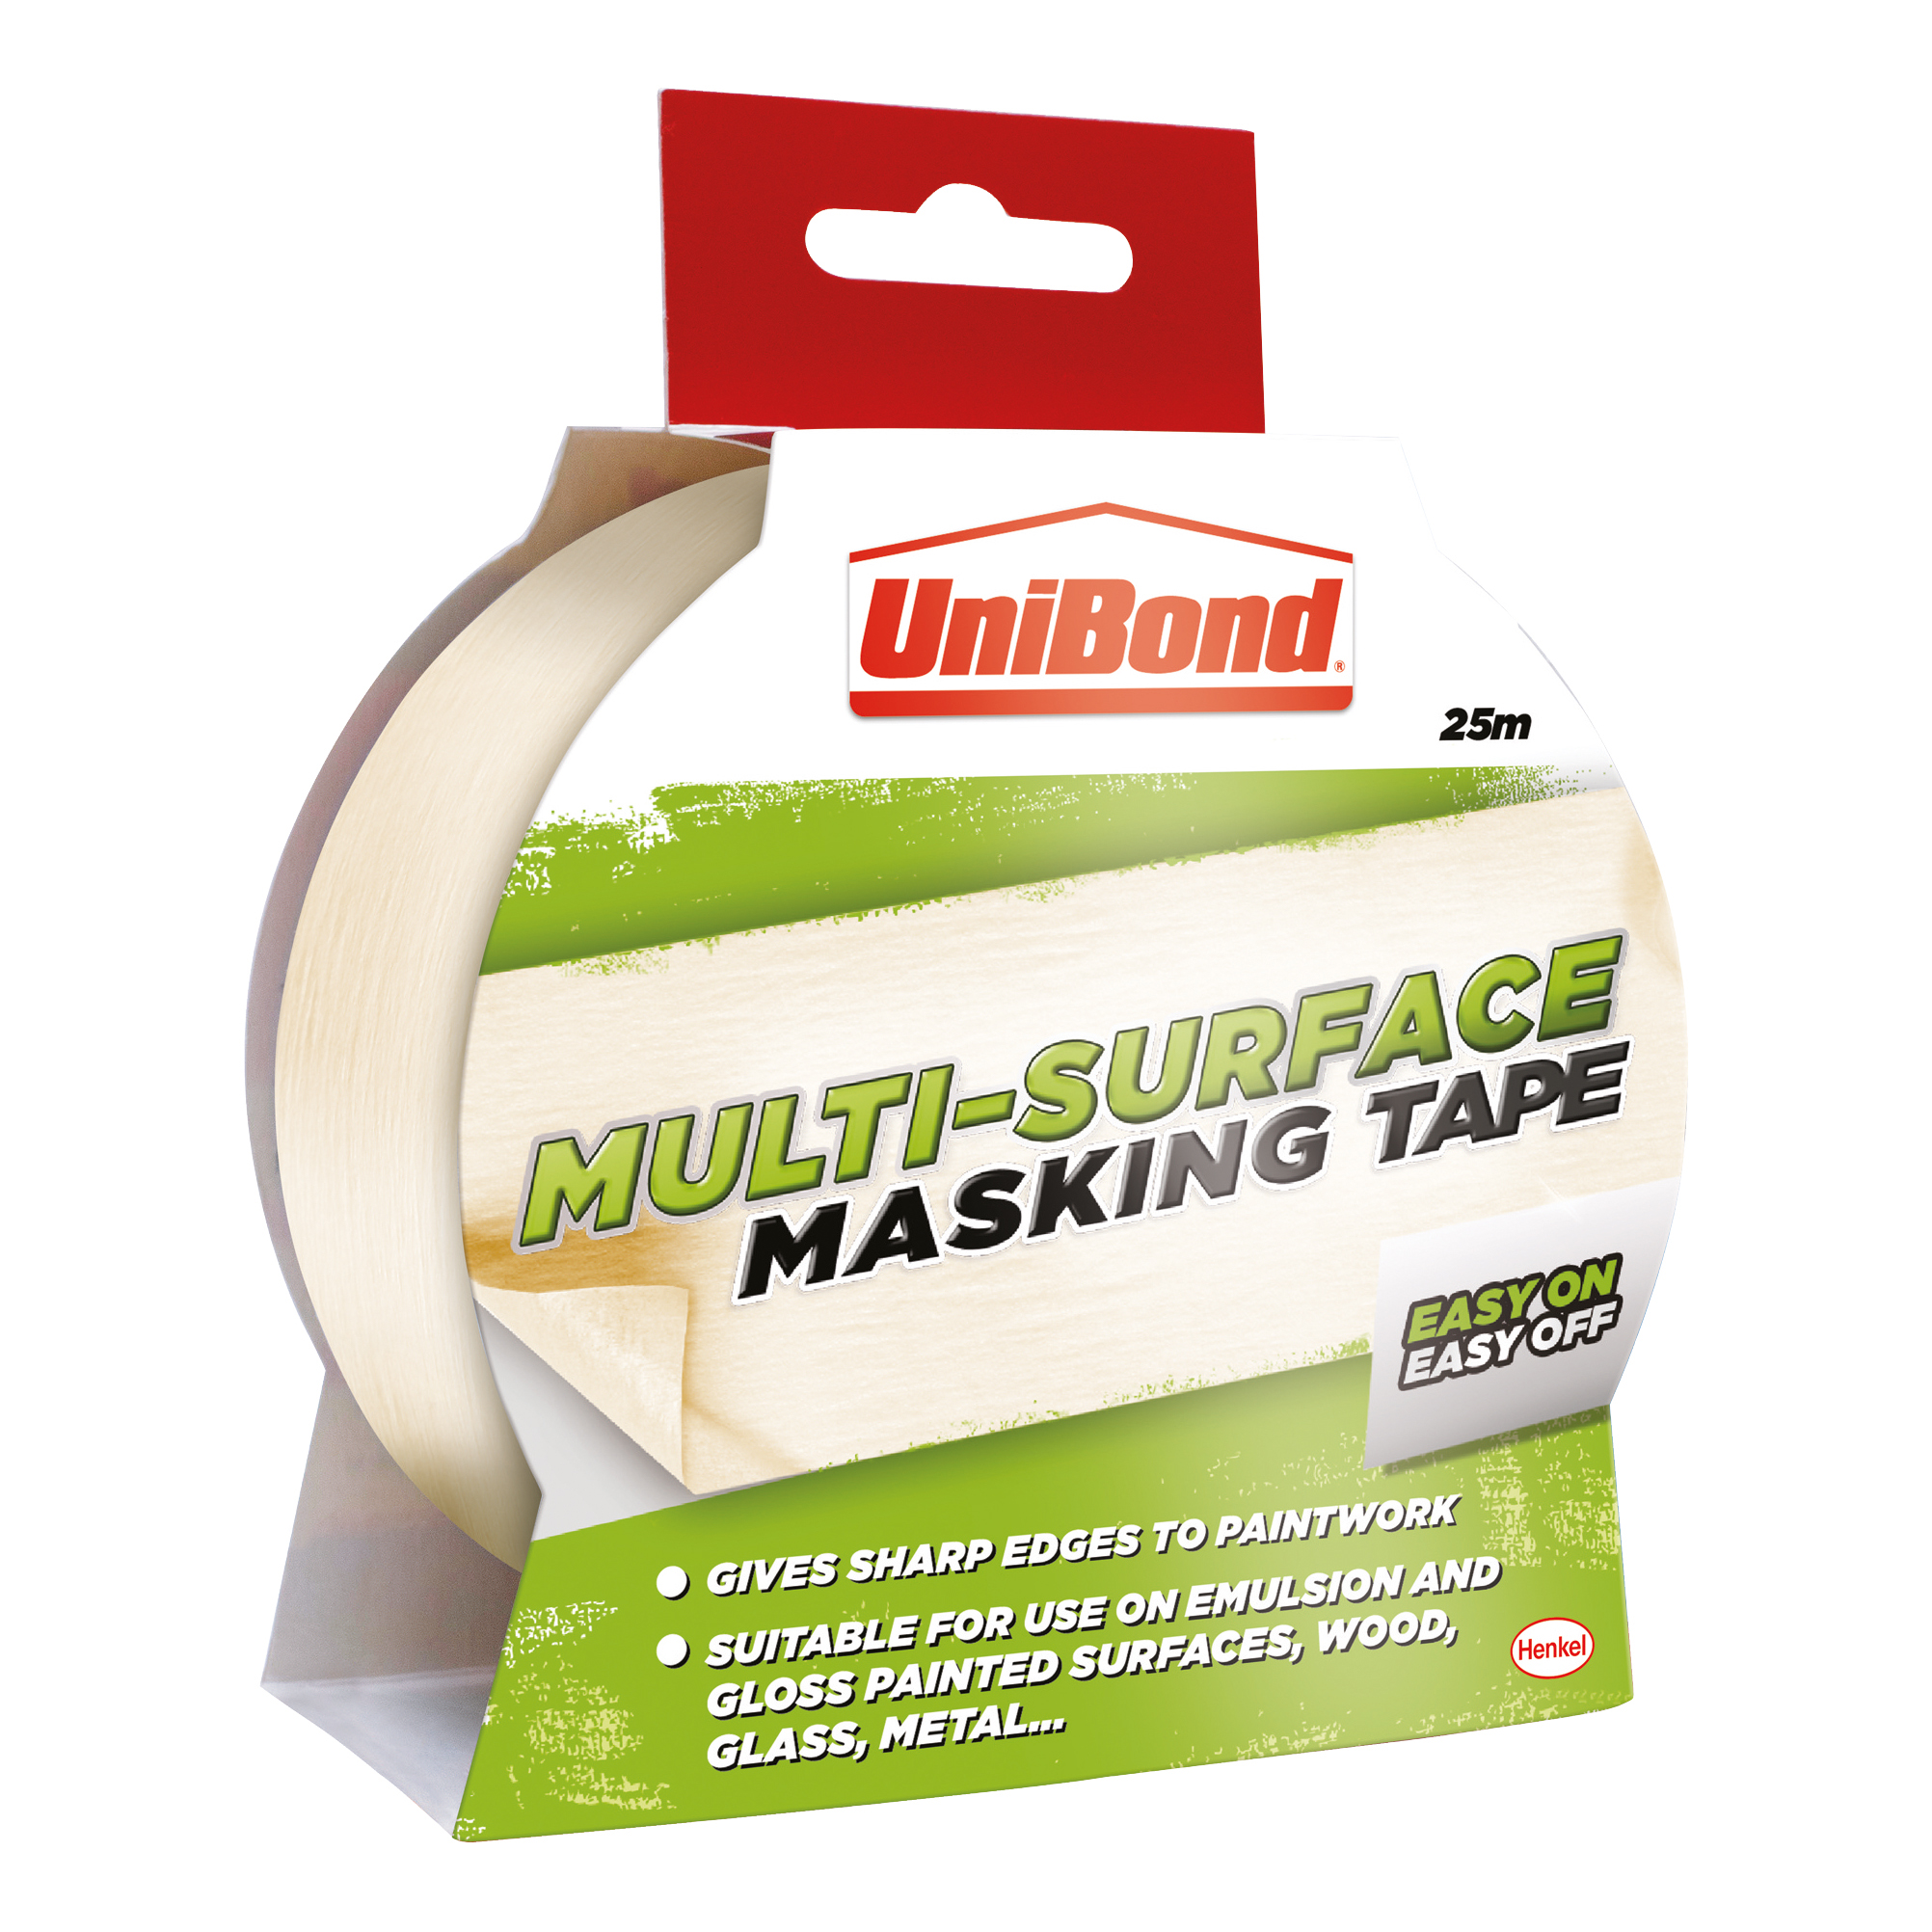 UniBond Masking Tape Easy On/Off 25mm x 25m Ref 1667769